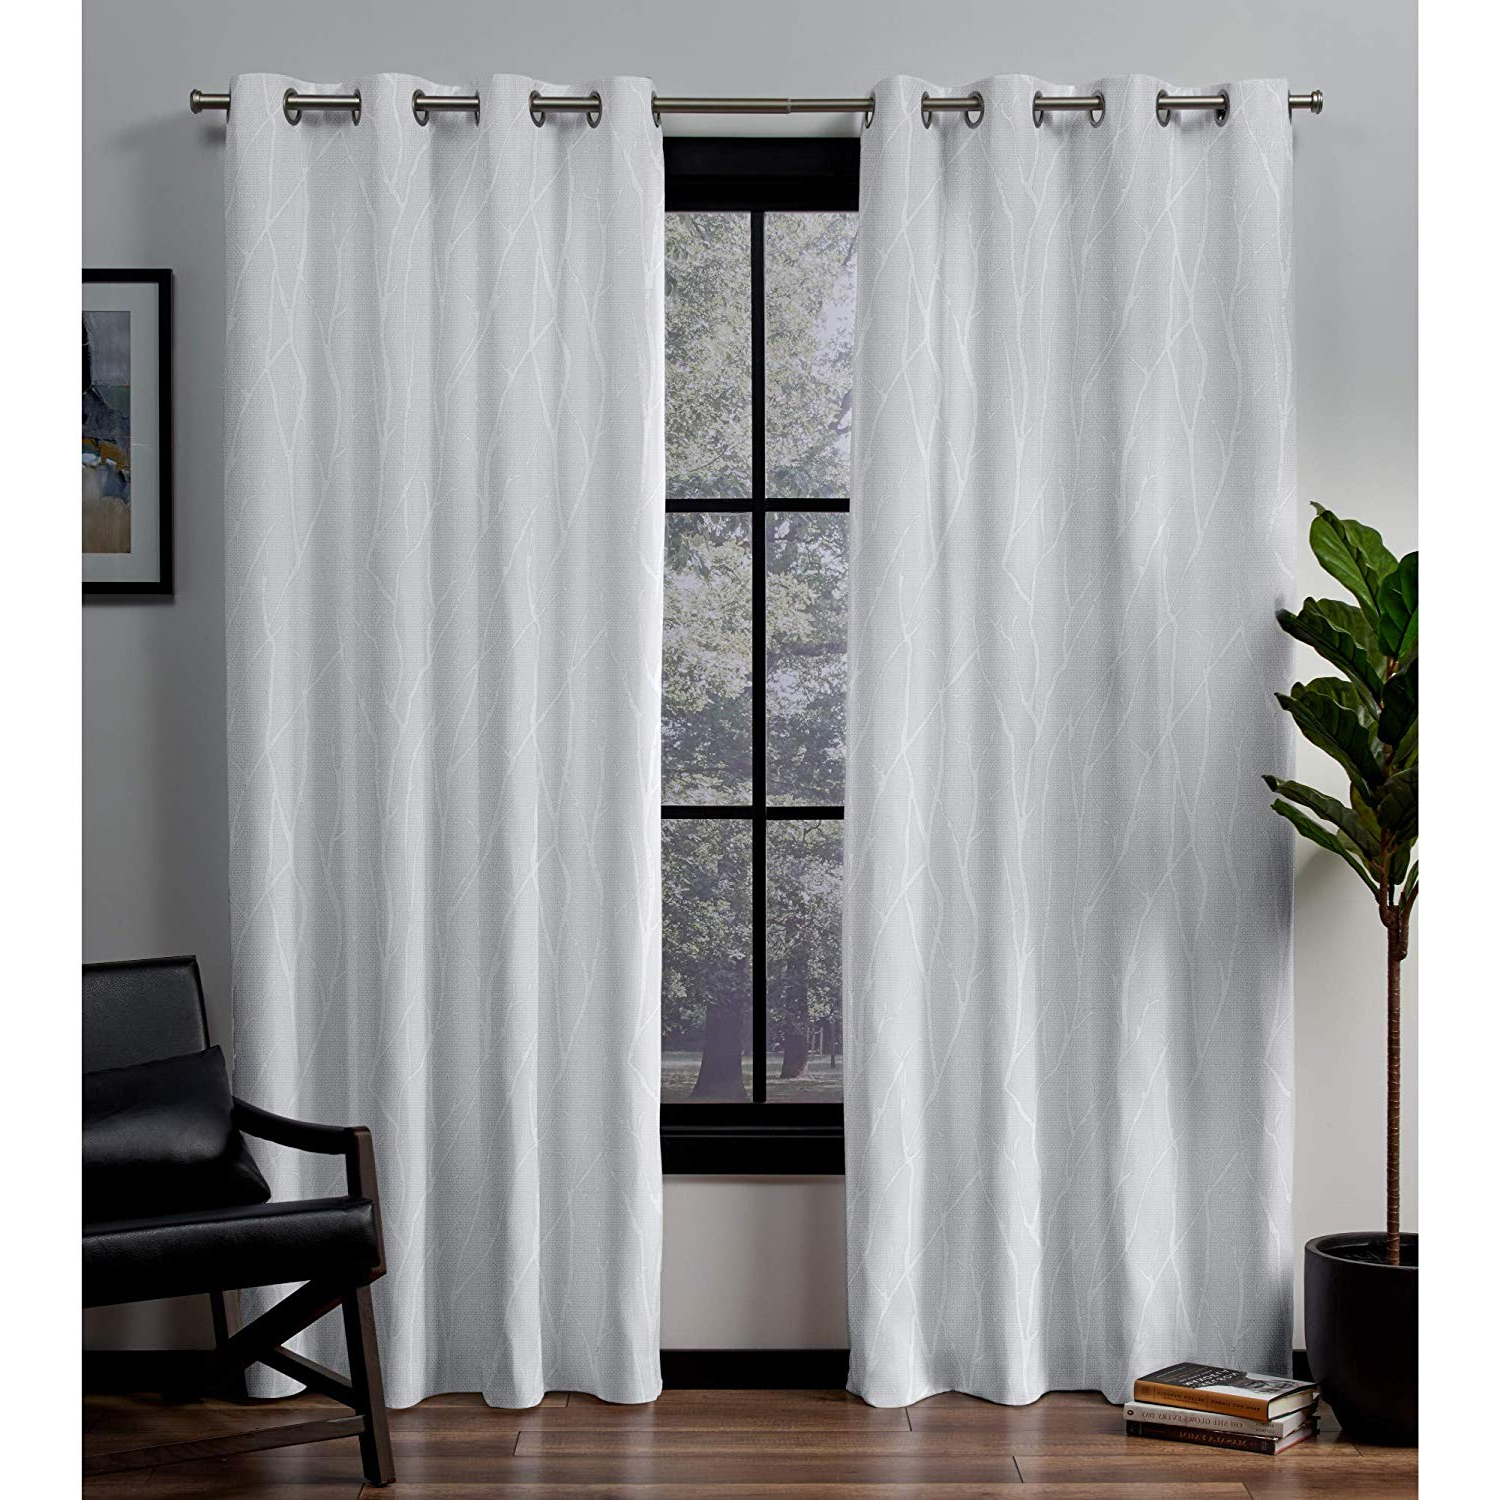 Exclusive Home Forest Hill Woven Blackout Grommet Top Curtain Panel Pair,  Winter, 52X84 With Regard To Most Popular Forest Hill Woven Blackout Grommet Top Curtain Panel Pairs (View 4 of 20)